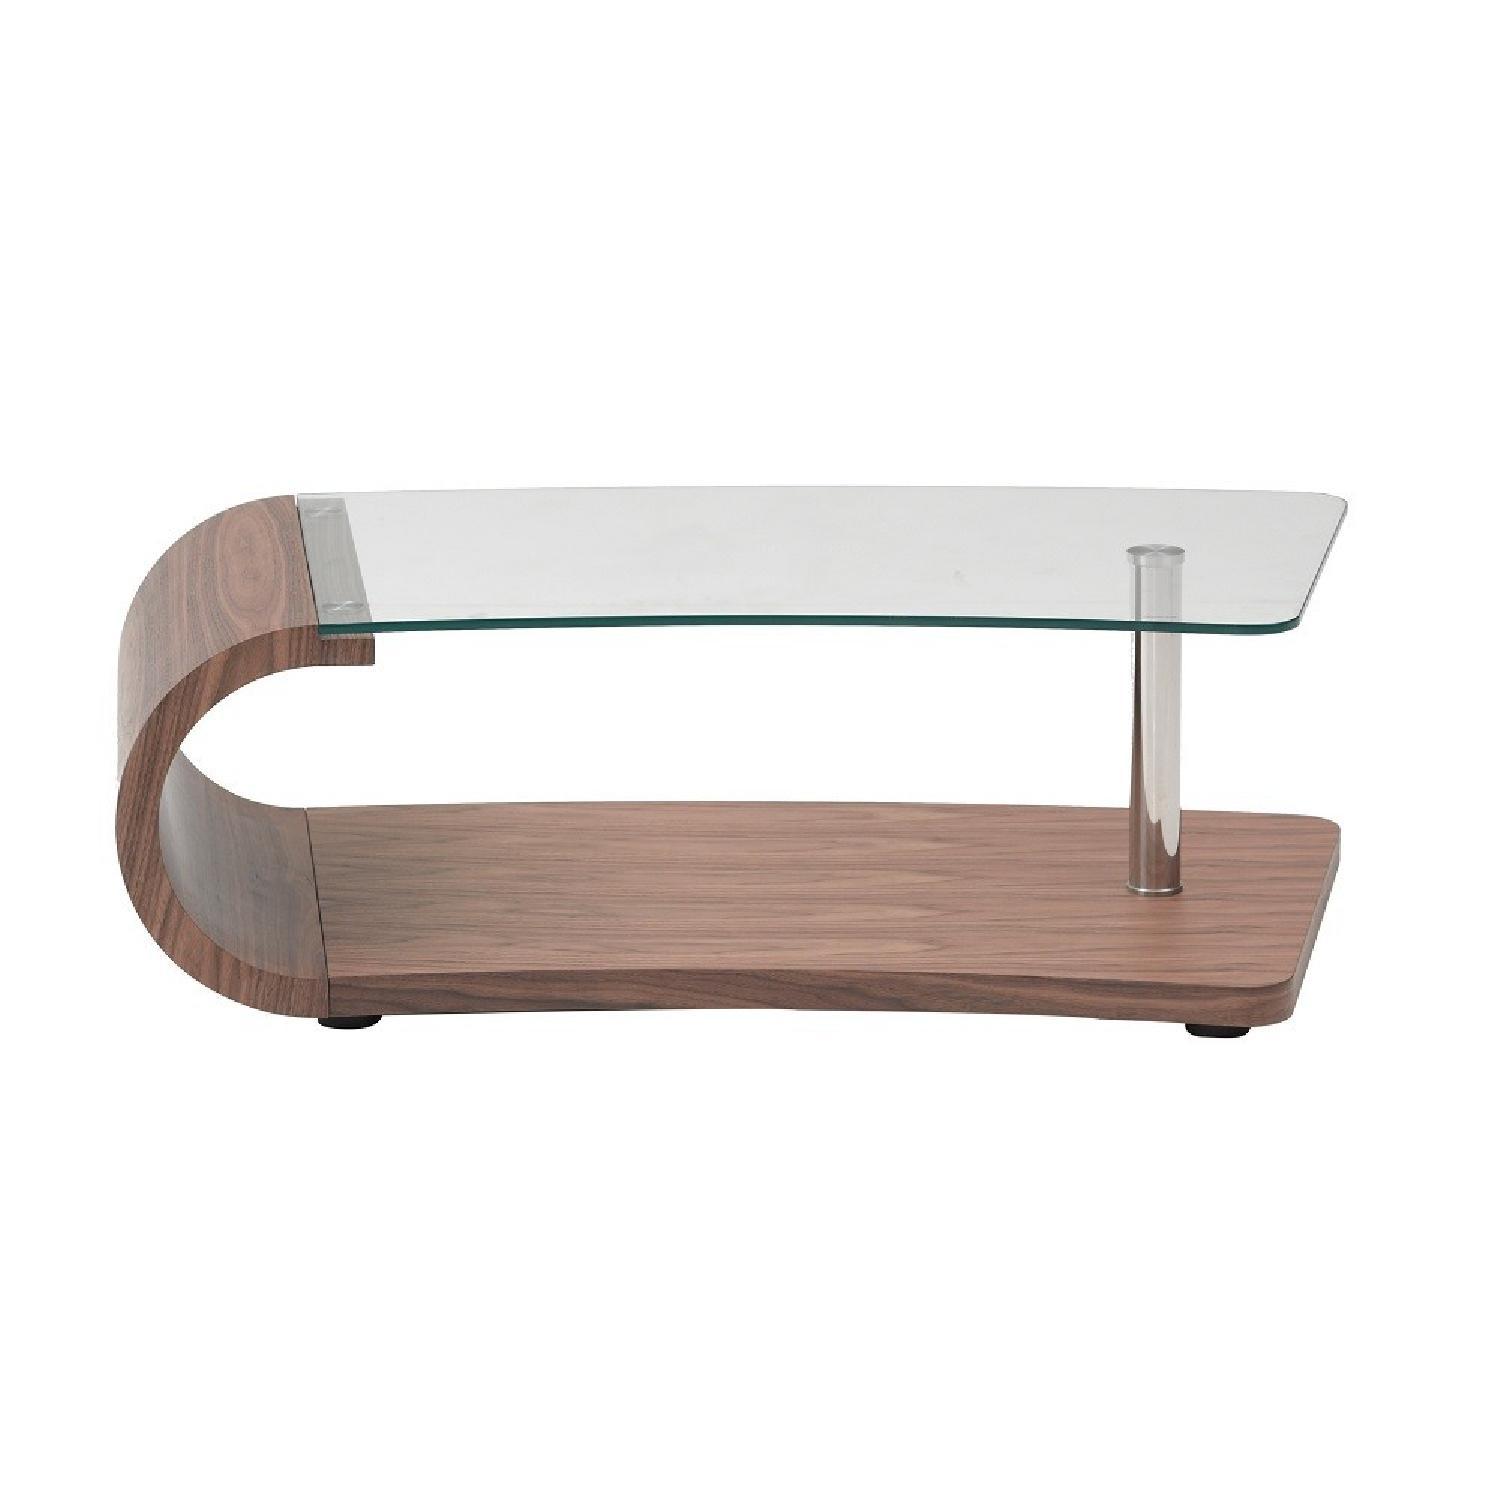 Modern Coffee Table in Walnut Finish w/ Tempered Glass Top